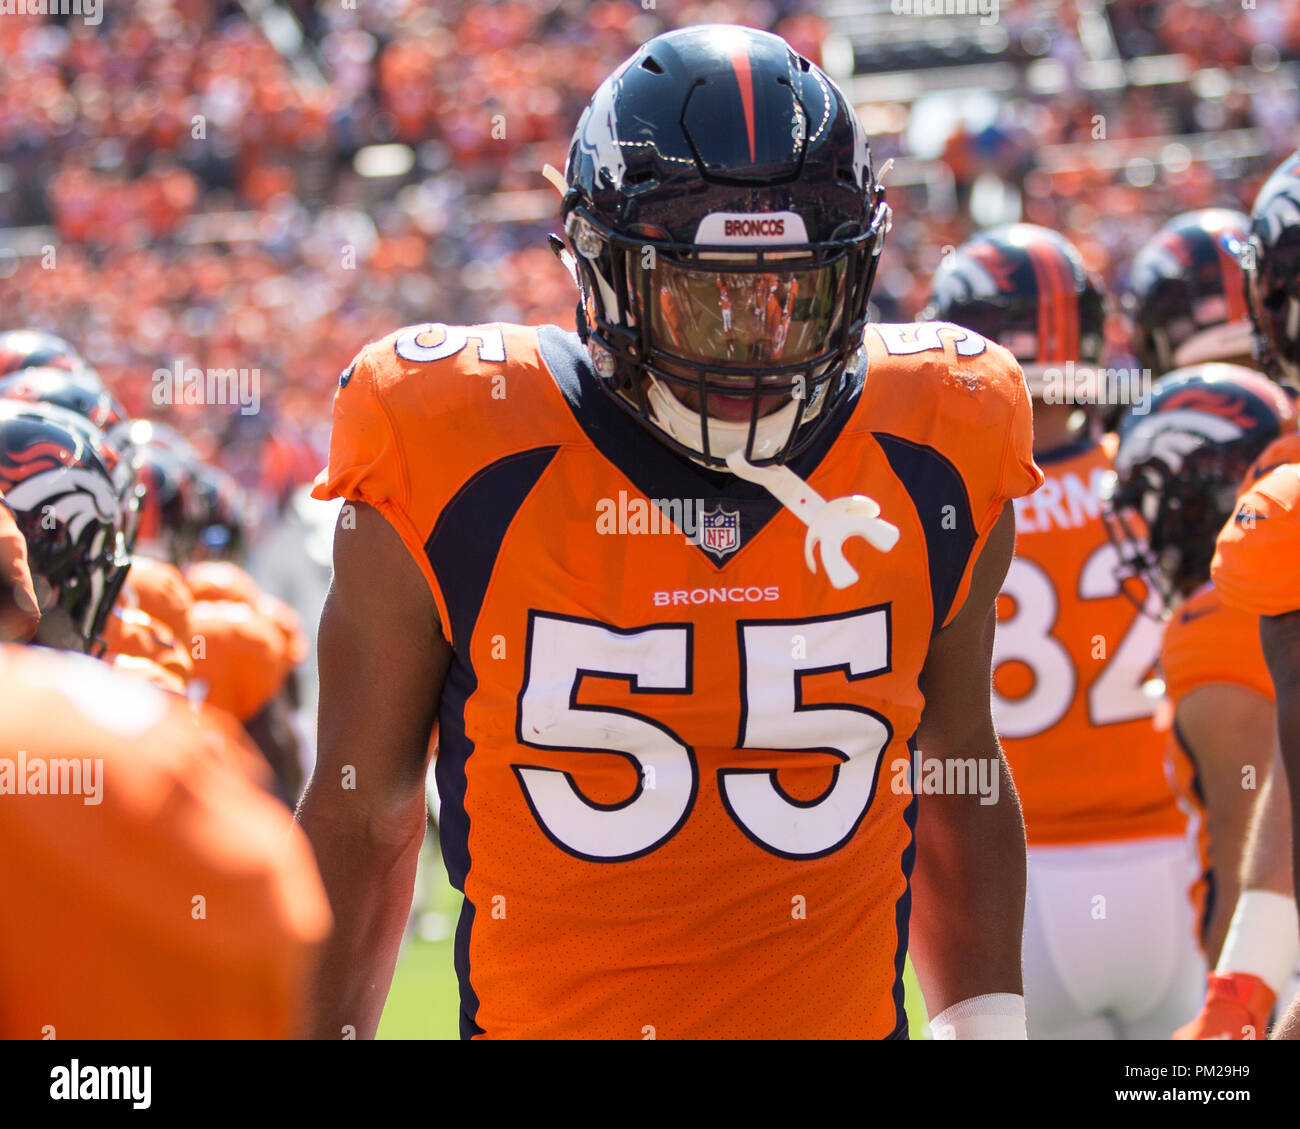 Denver, USA. September 16, 2018: Denver Broncos Linebacker